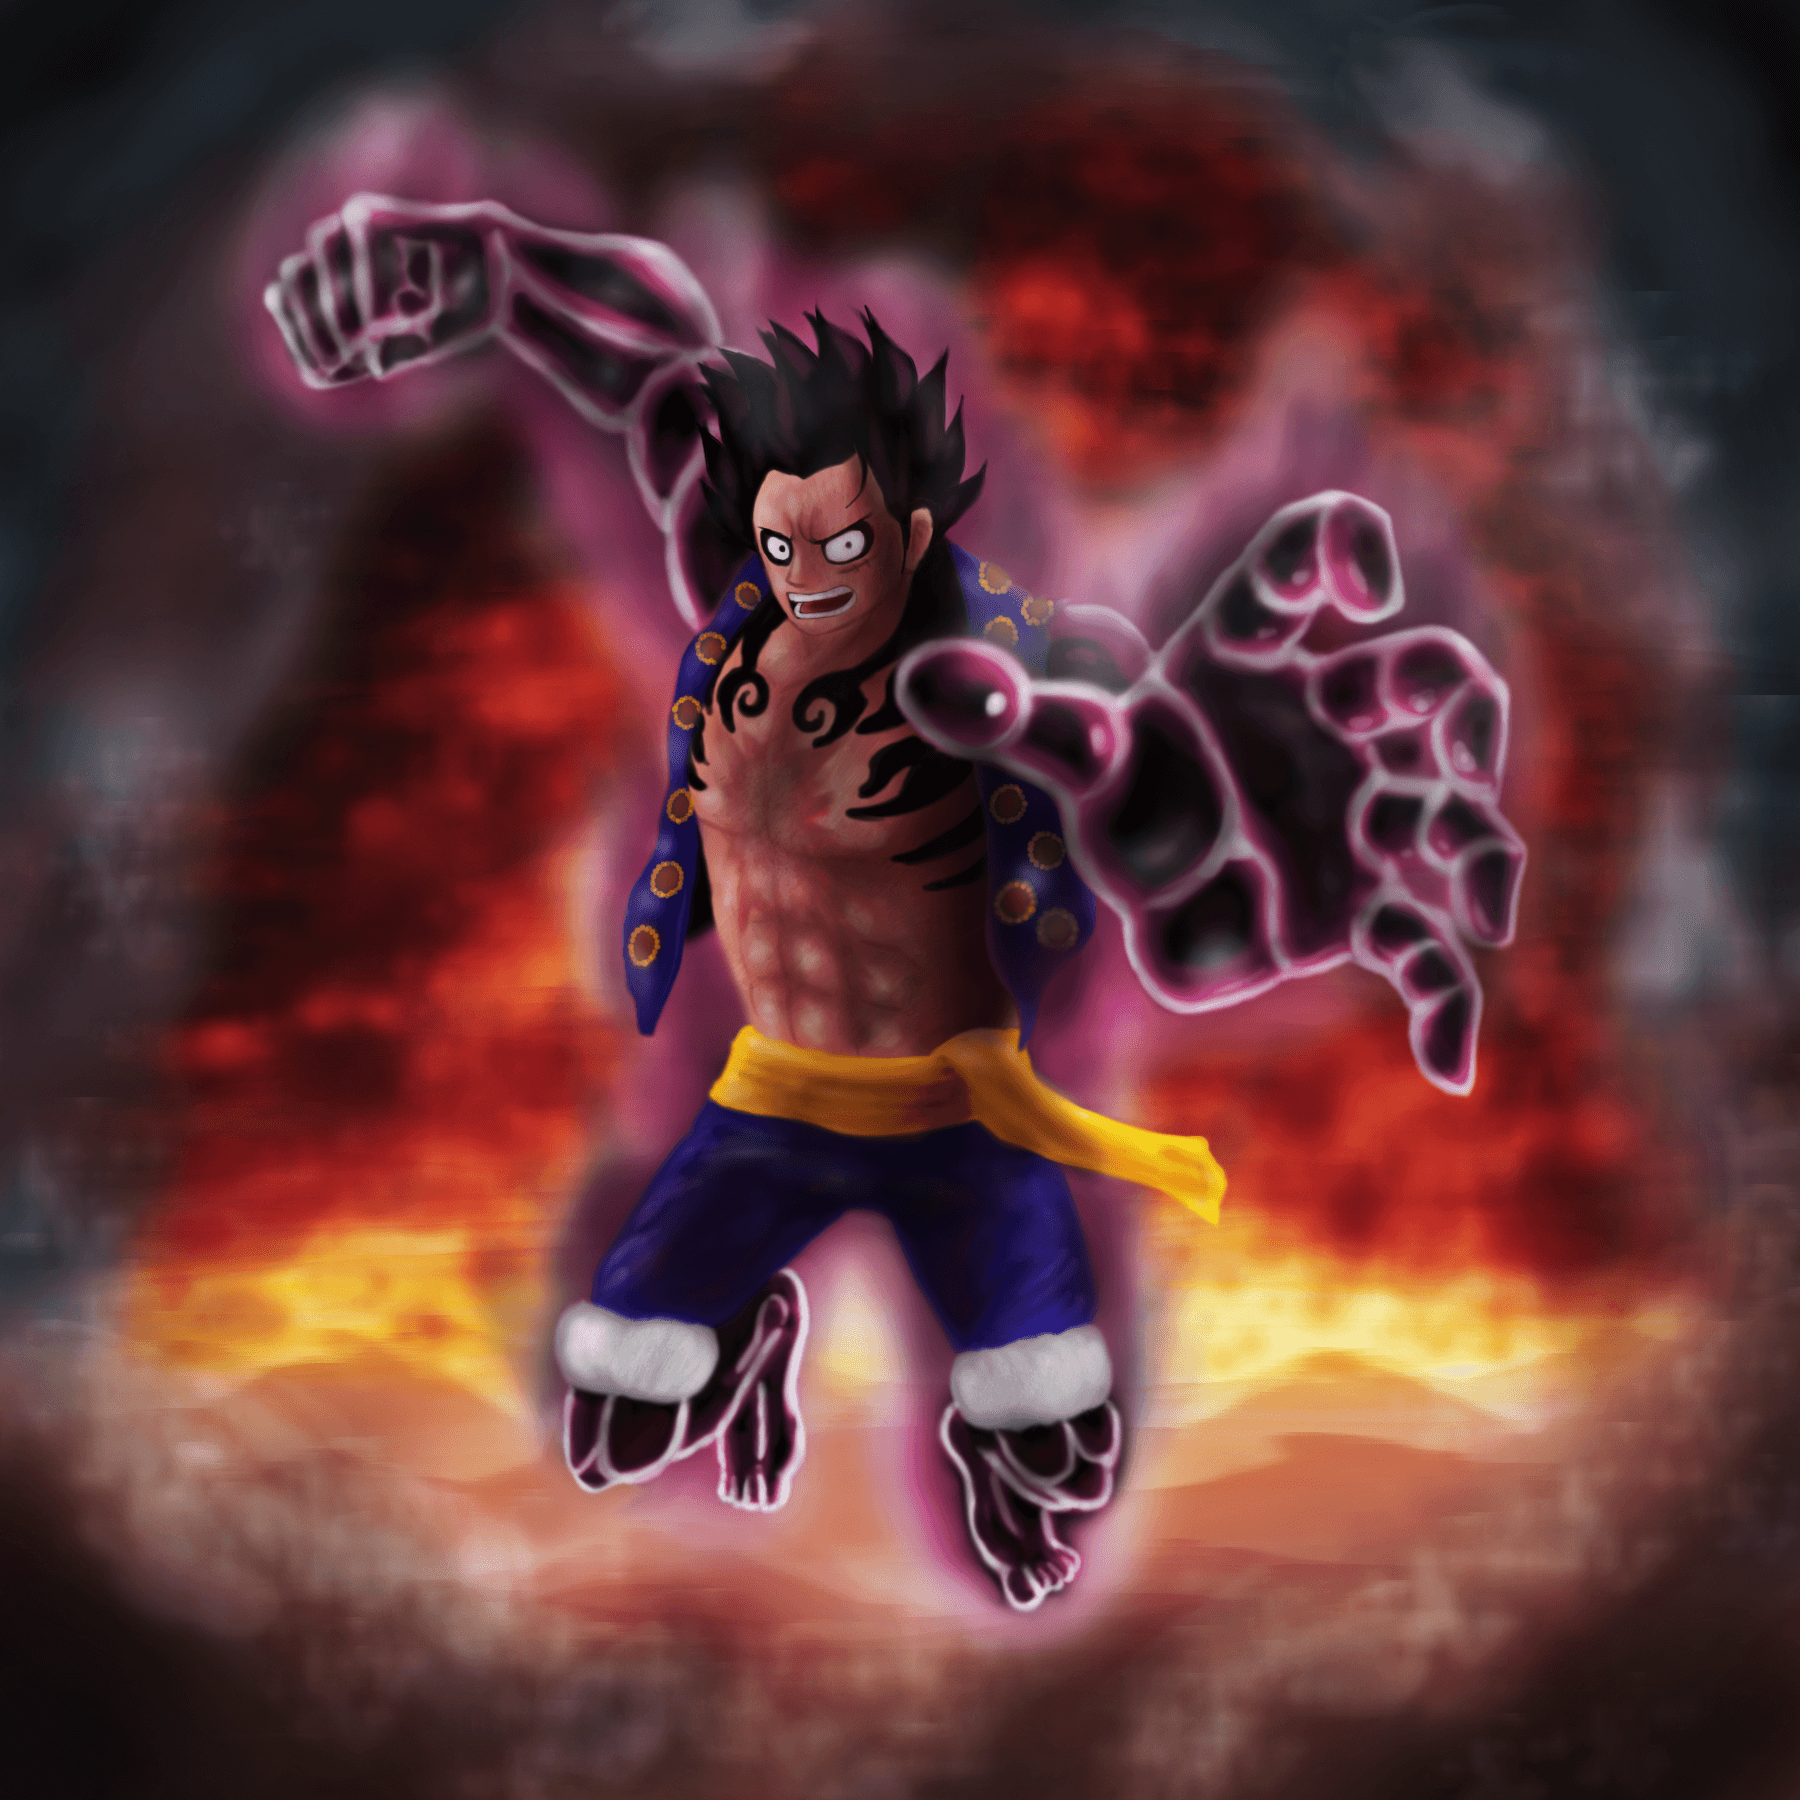 Download Wallpaper Luffy Gear 5 Hd Cikimmcom